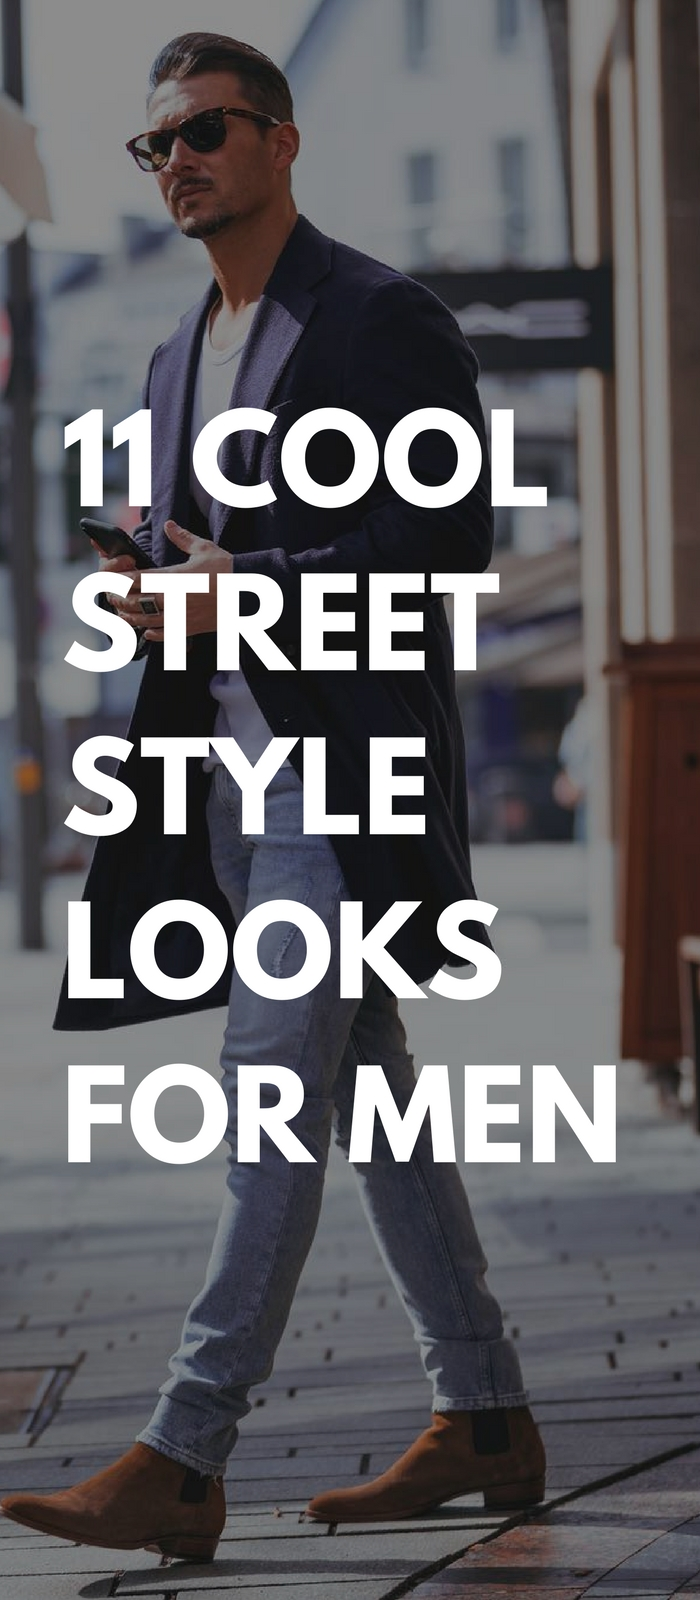 Cool Street style looks for men 1.jpg